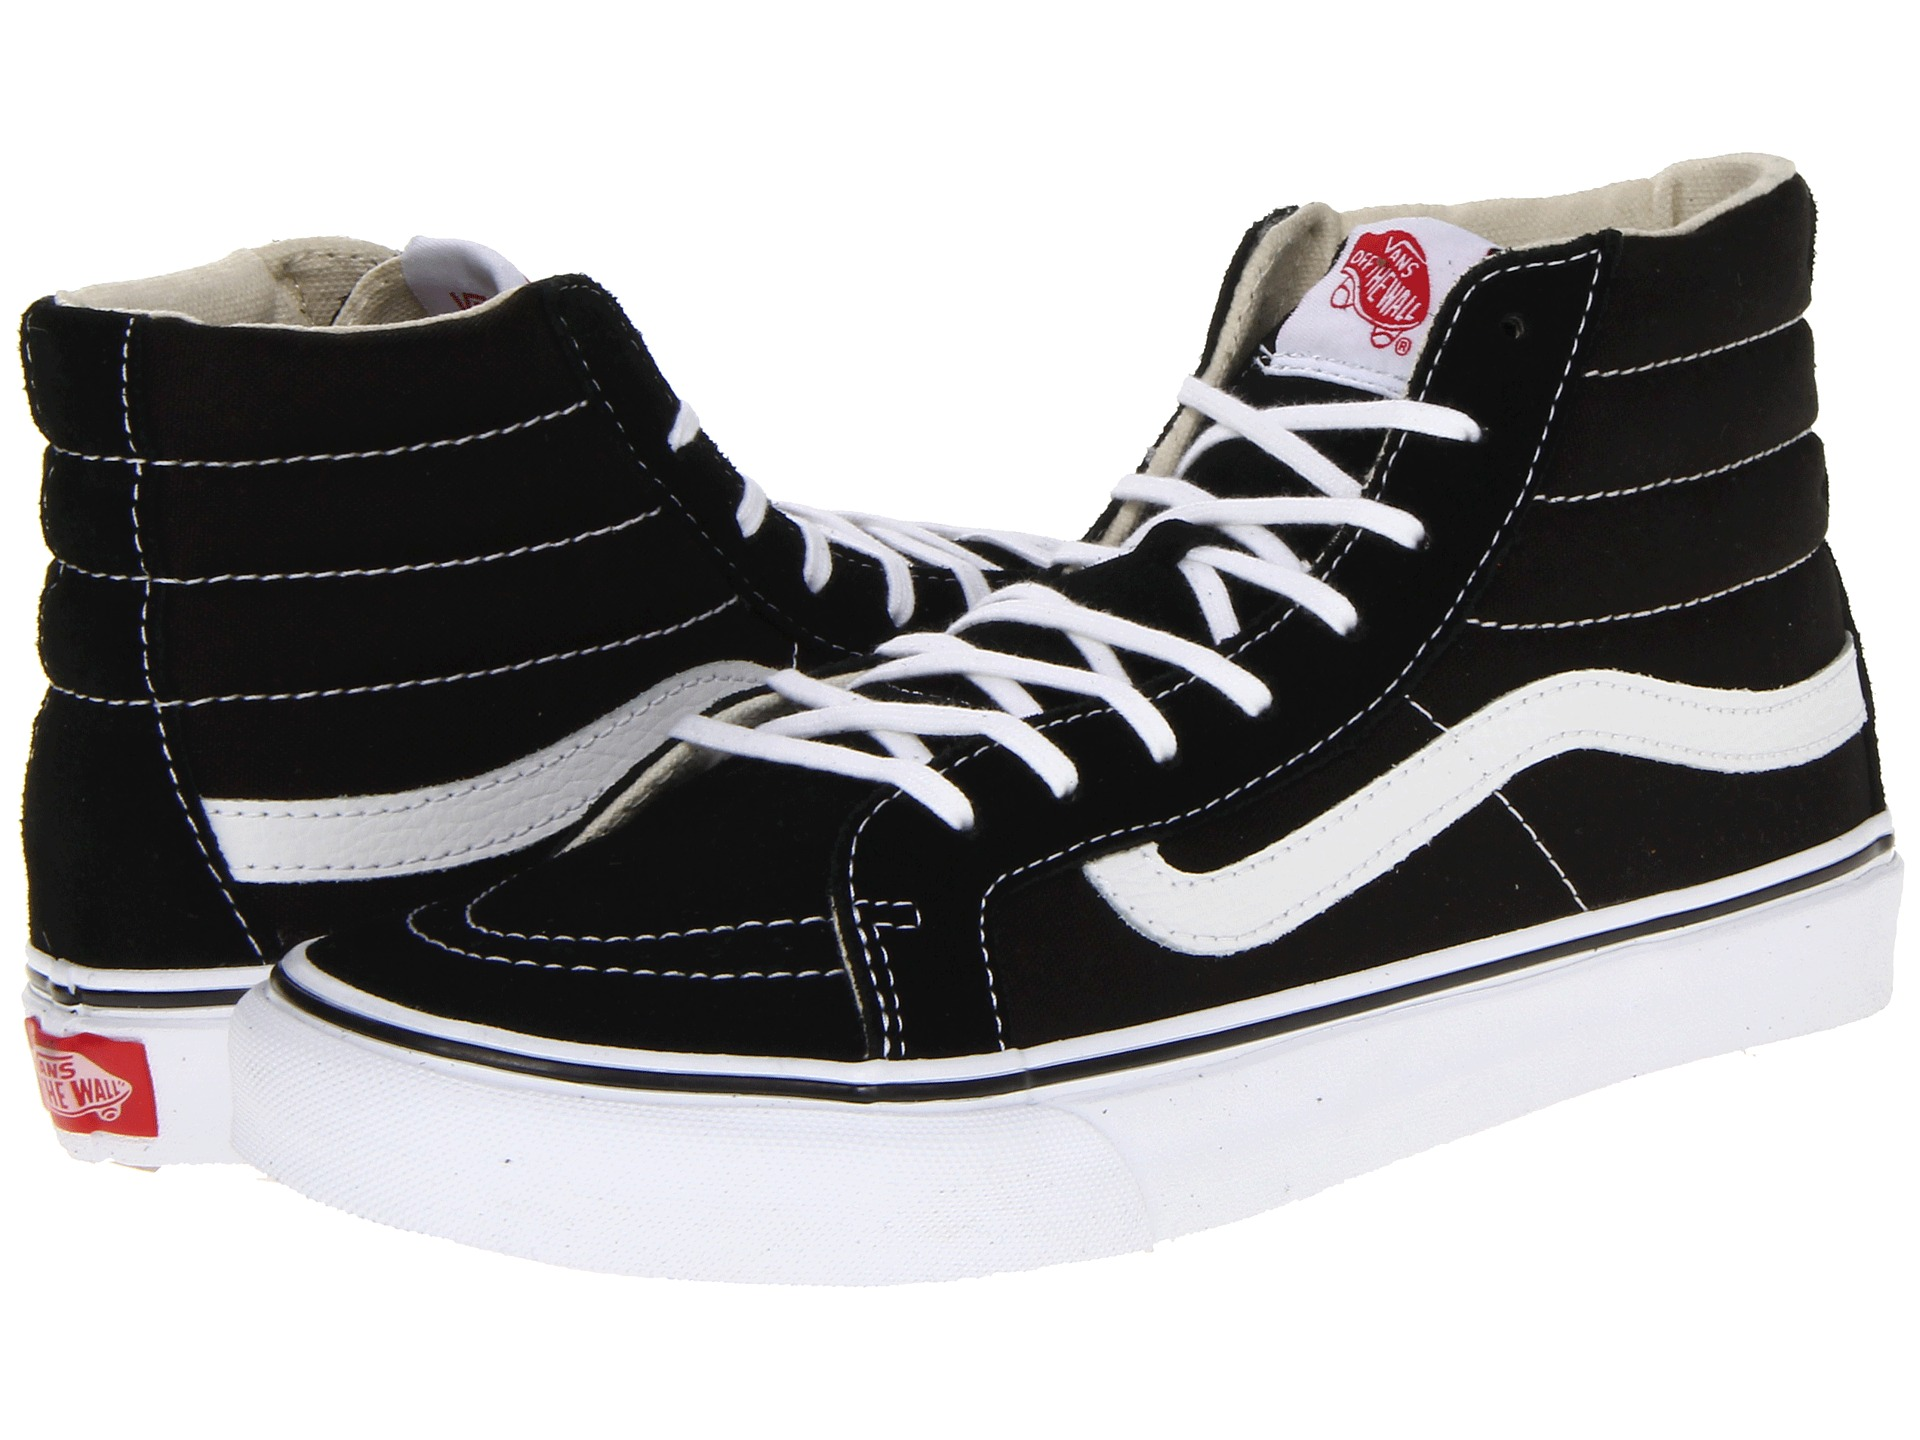 vans sk8 hi slim free shipping both ways. Black Bedroom Furniture Sets. Home Design Ideas